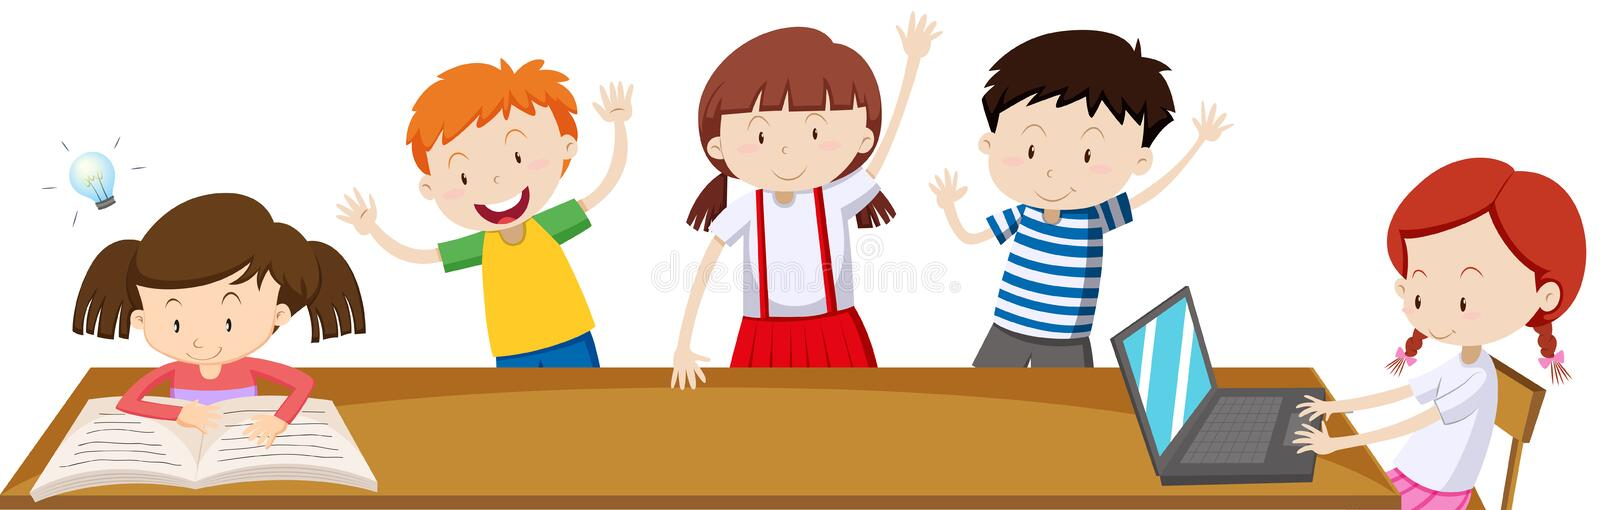 Children learning in the classroom vector illustration